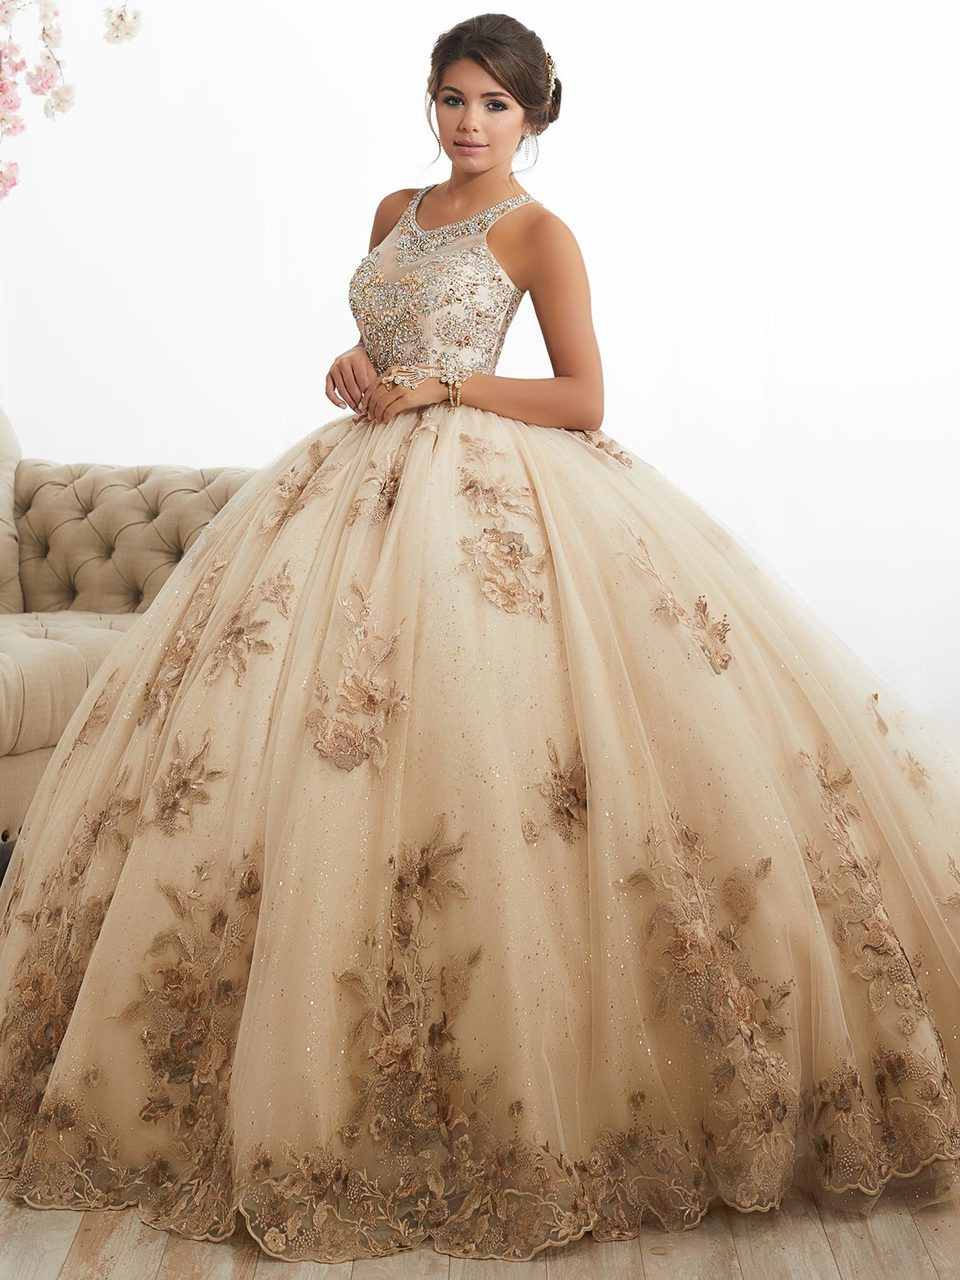 High Neckline Ball Gown Tiffany Quinceanera Dress 26884